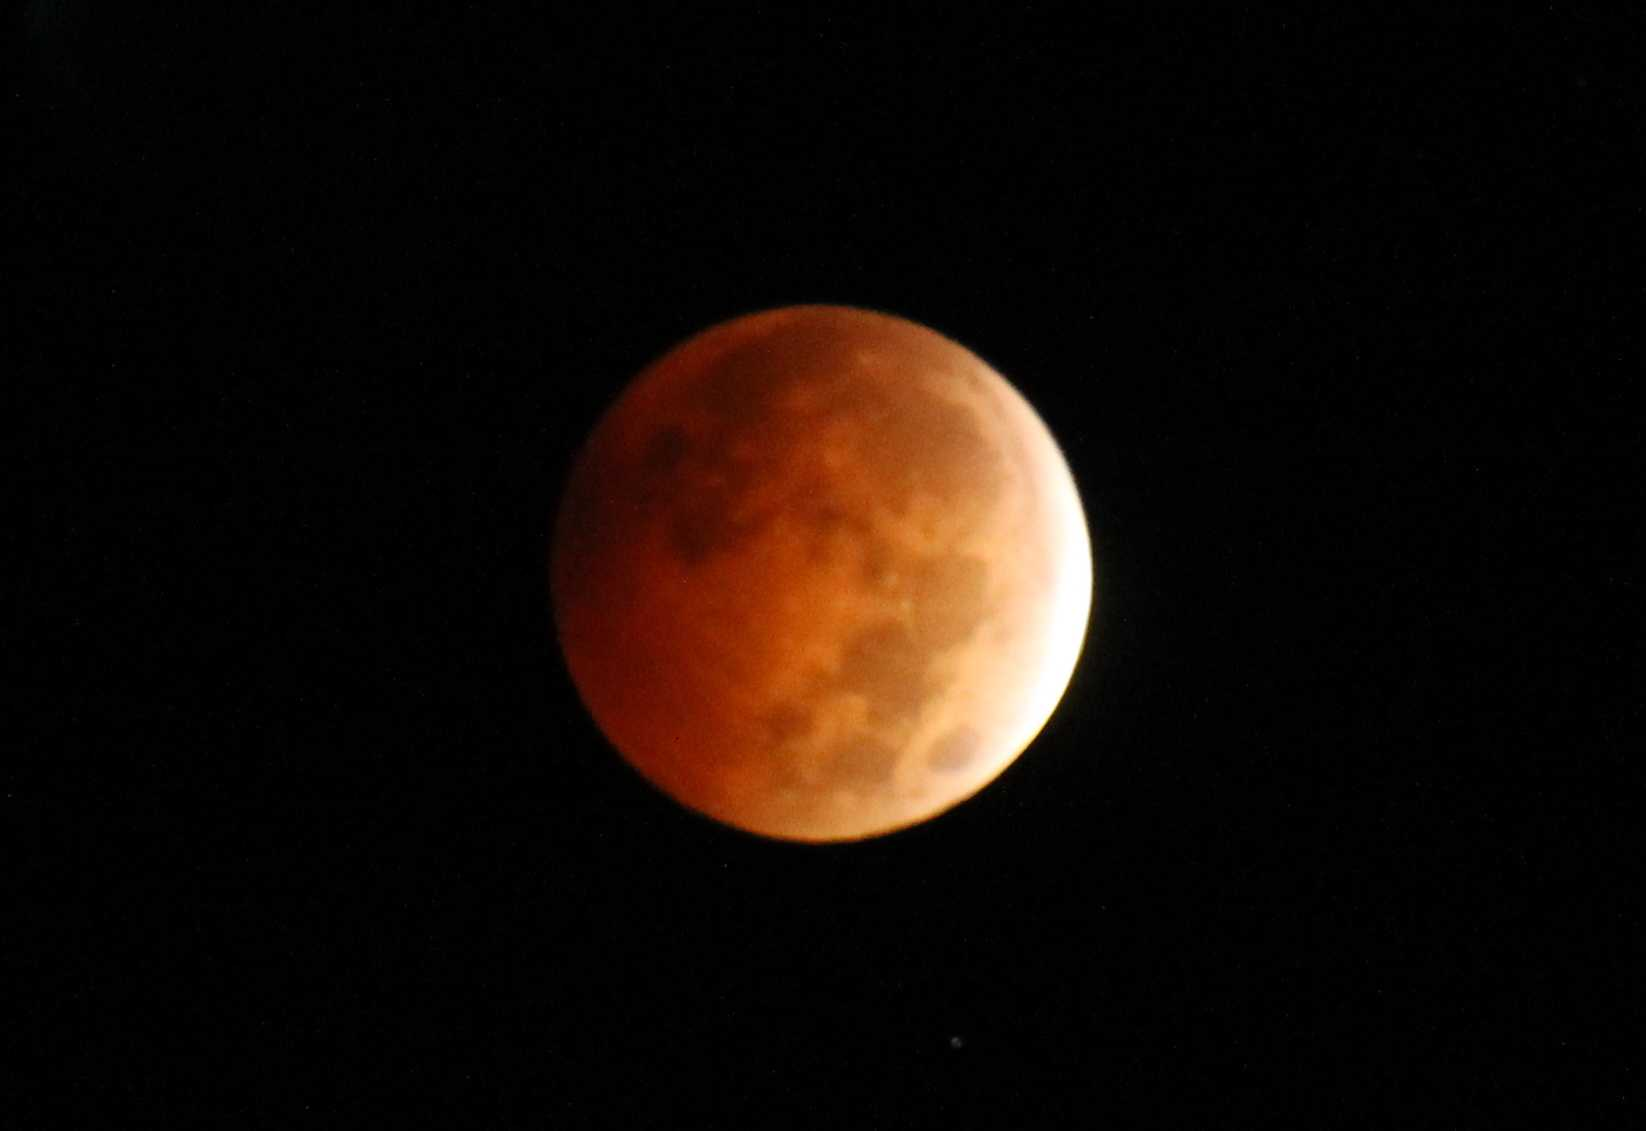 The College of DuPage Astronomy Club with instructor Joe DalSanto captured the total lunar eclipse on Oct. 8, 2014.